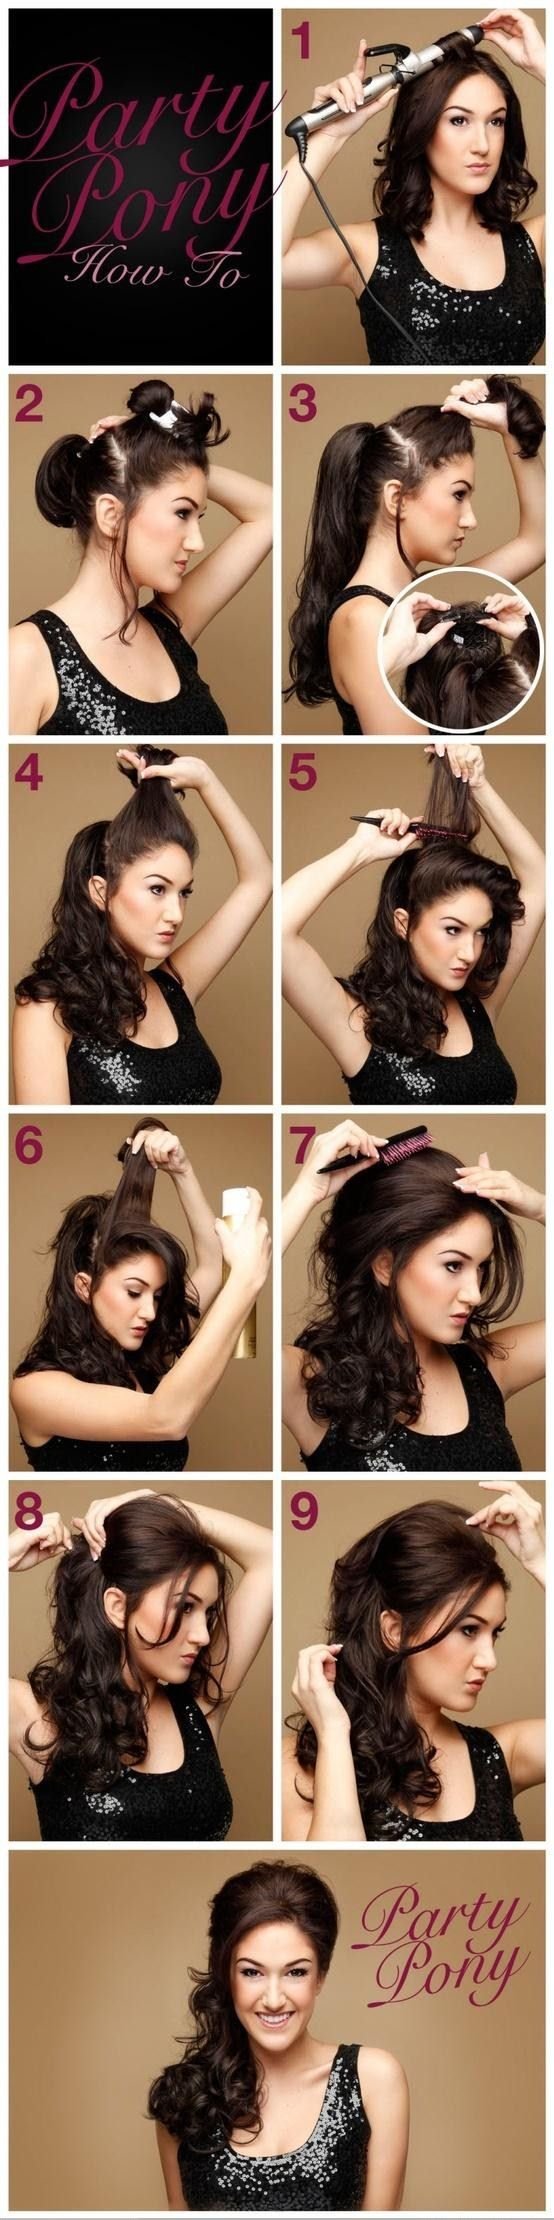 DIY Party Pony Hair diy easy diy diy beauty diy hair diy fashion beauty diy diy style diy hair style